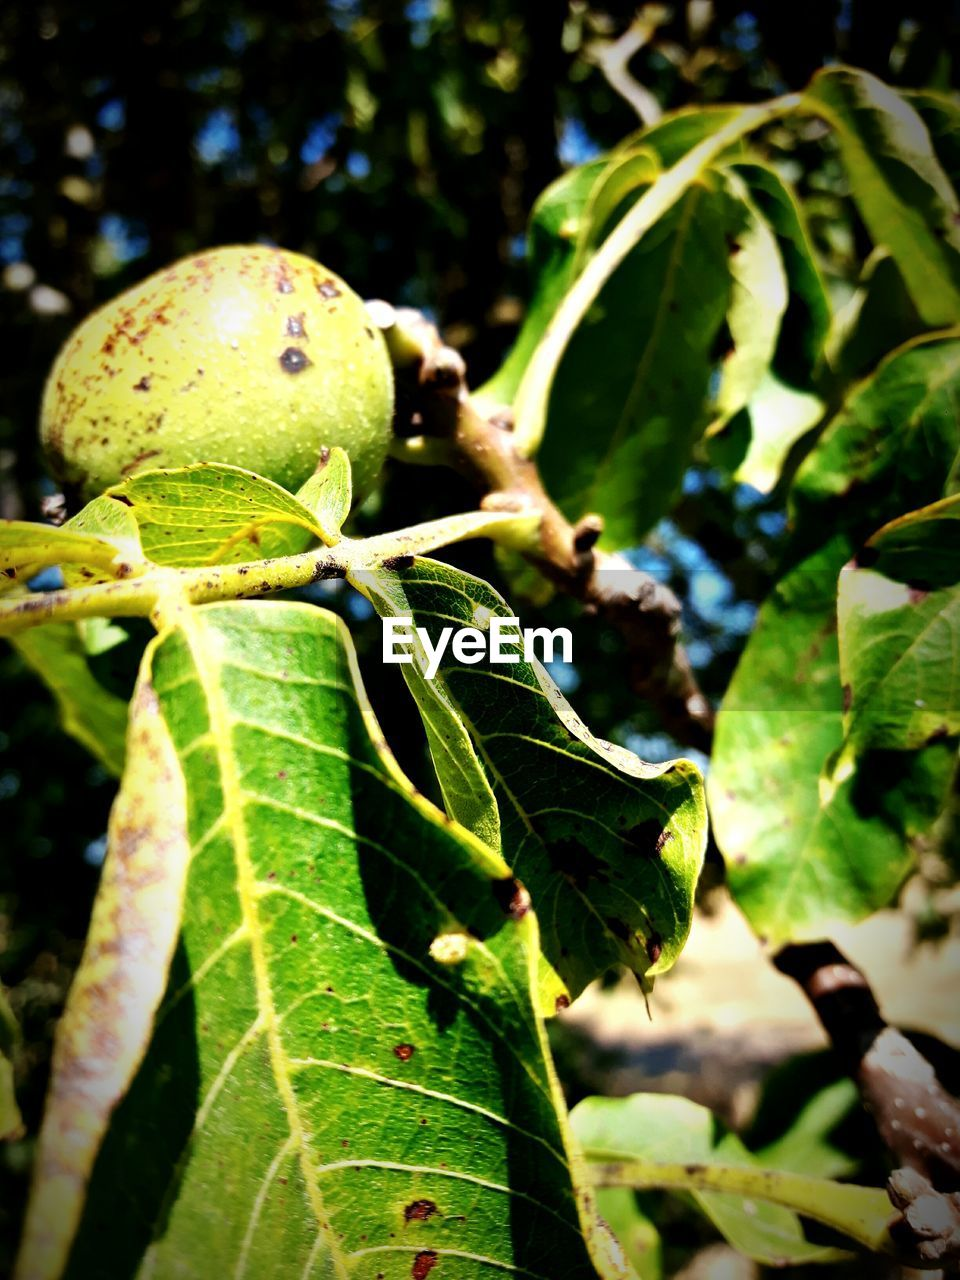 leaf, green color, growth, nature, close-up, plant, no people, outdoors, focus on foreground, day, beauty in nature, fruit, freshness, tree